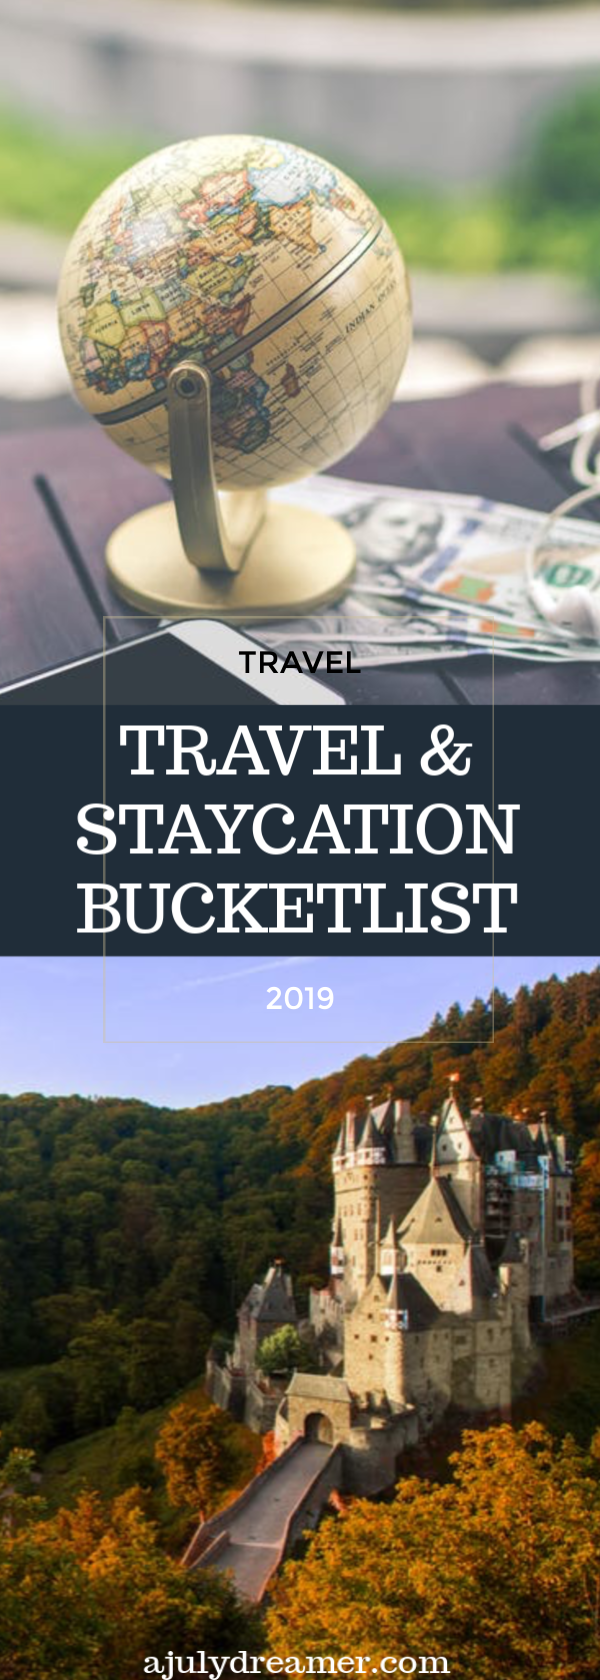 2019 Travel & Staycation Bucketlist   19 Places to Explore!